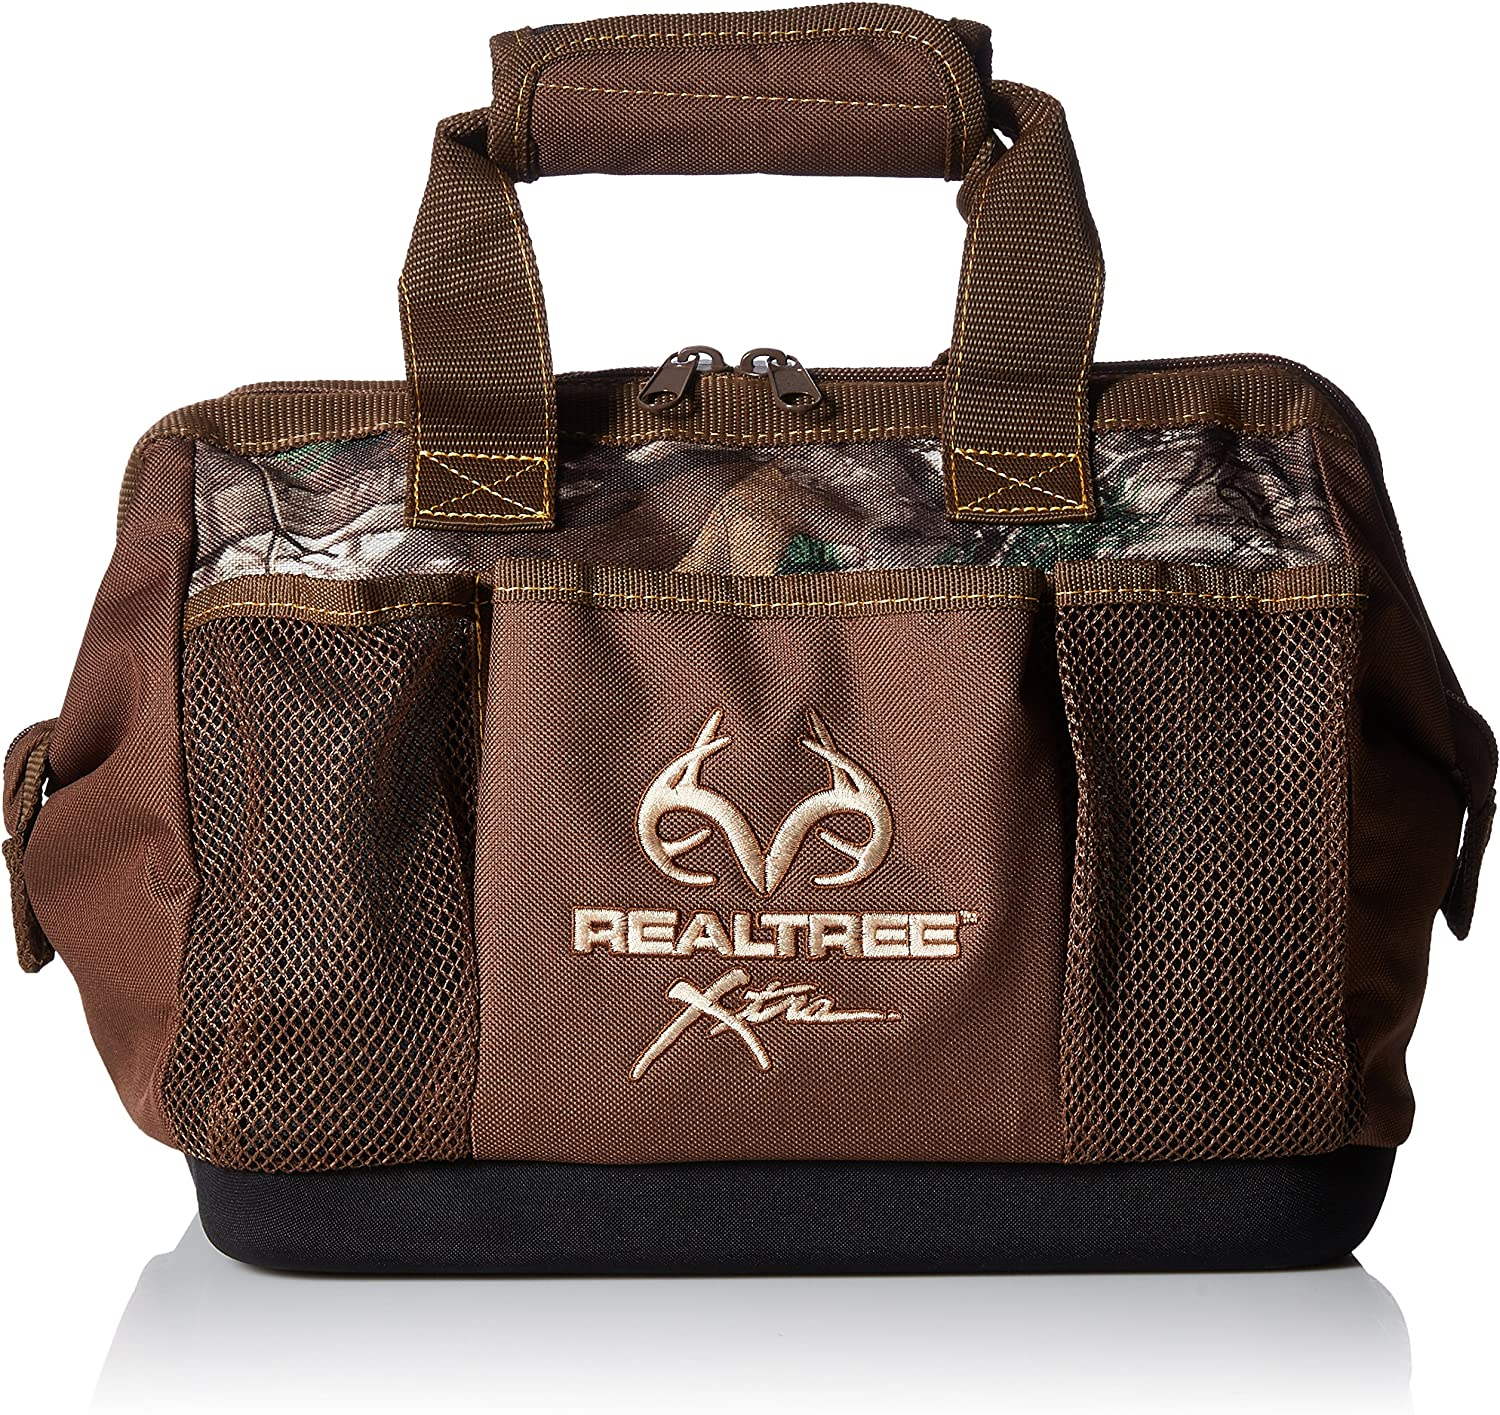 Realtree XTRA Camouflage Tool Bag Camping Hunting Automotive 13 x 9 x 9